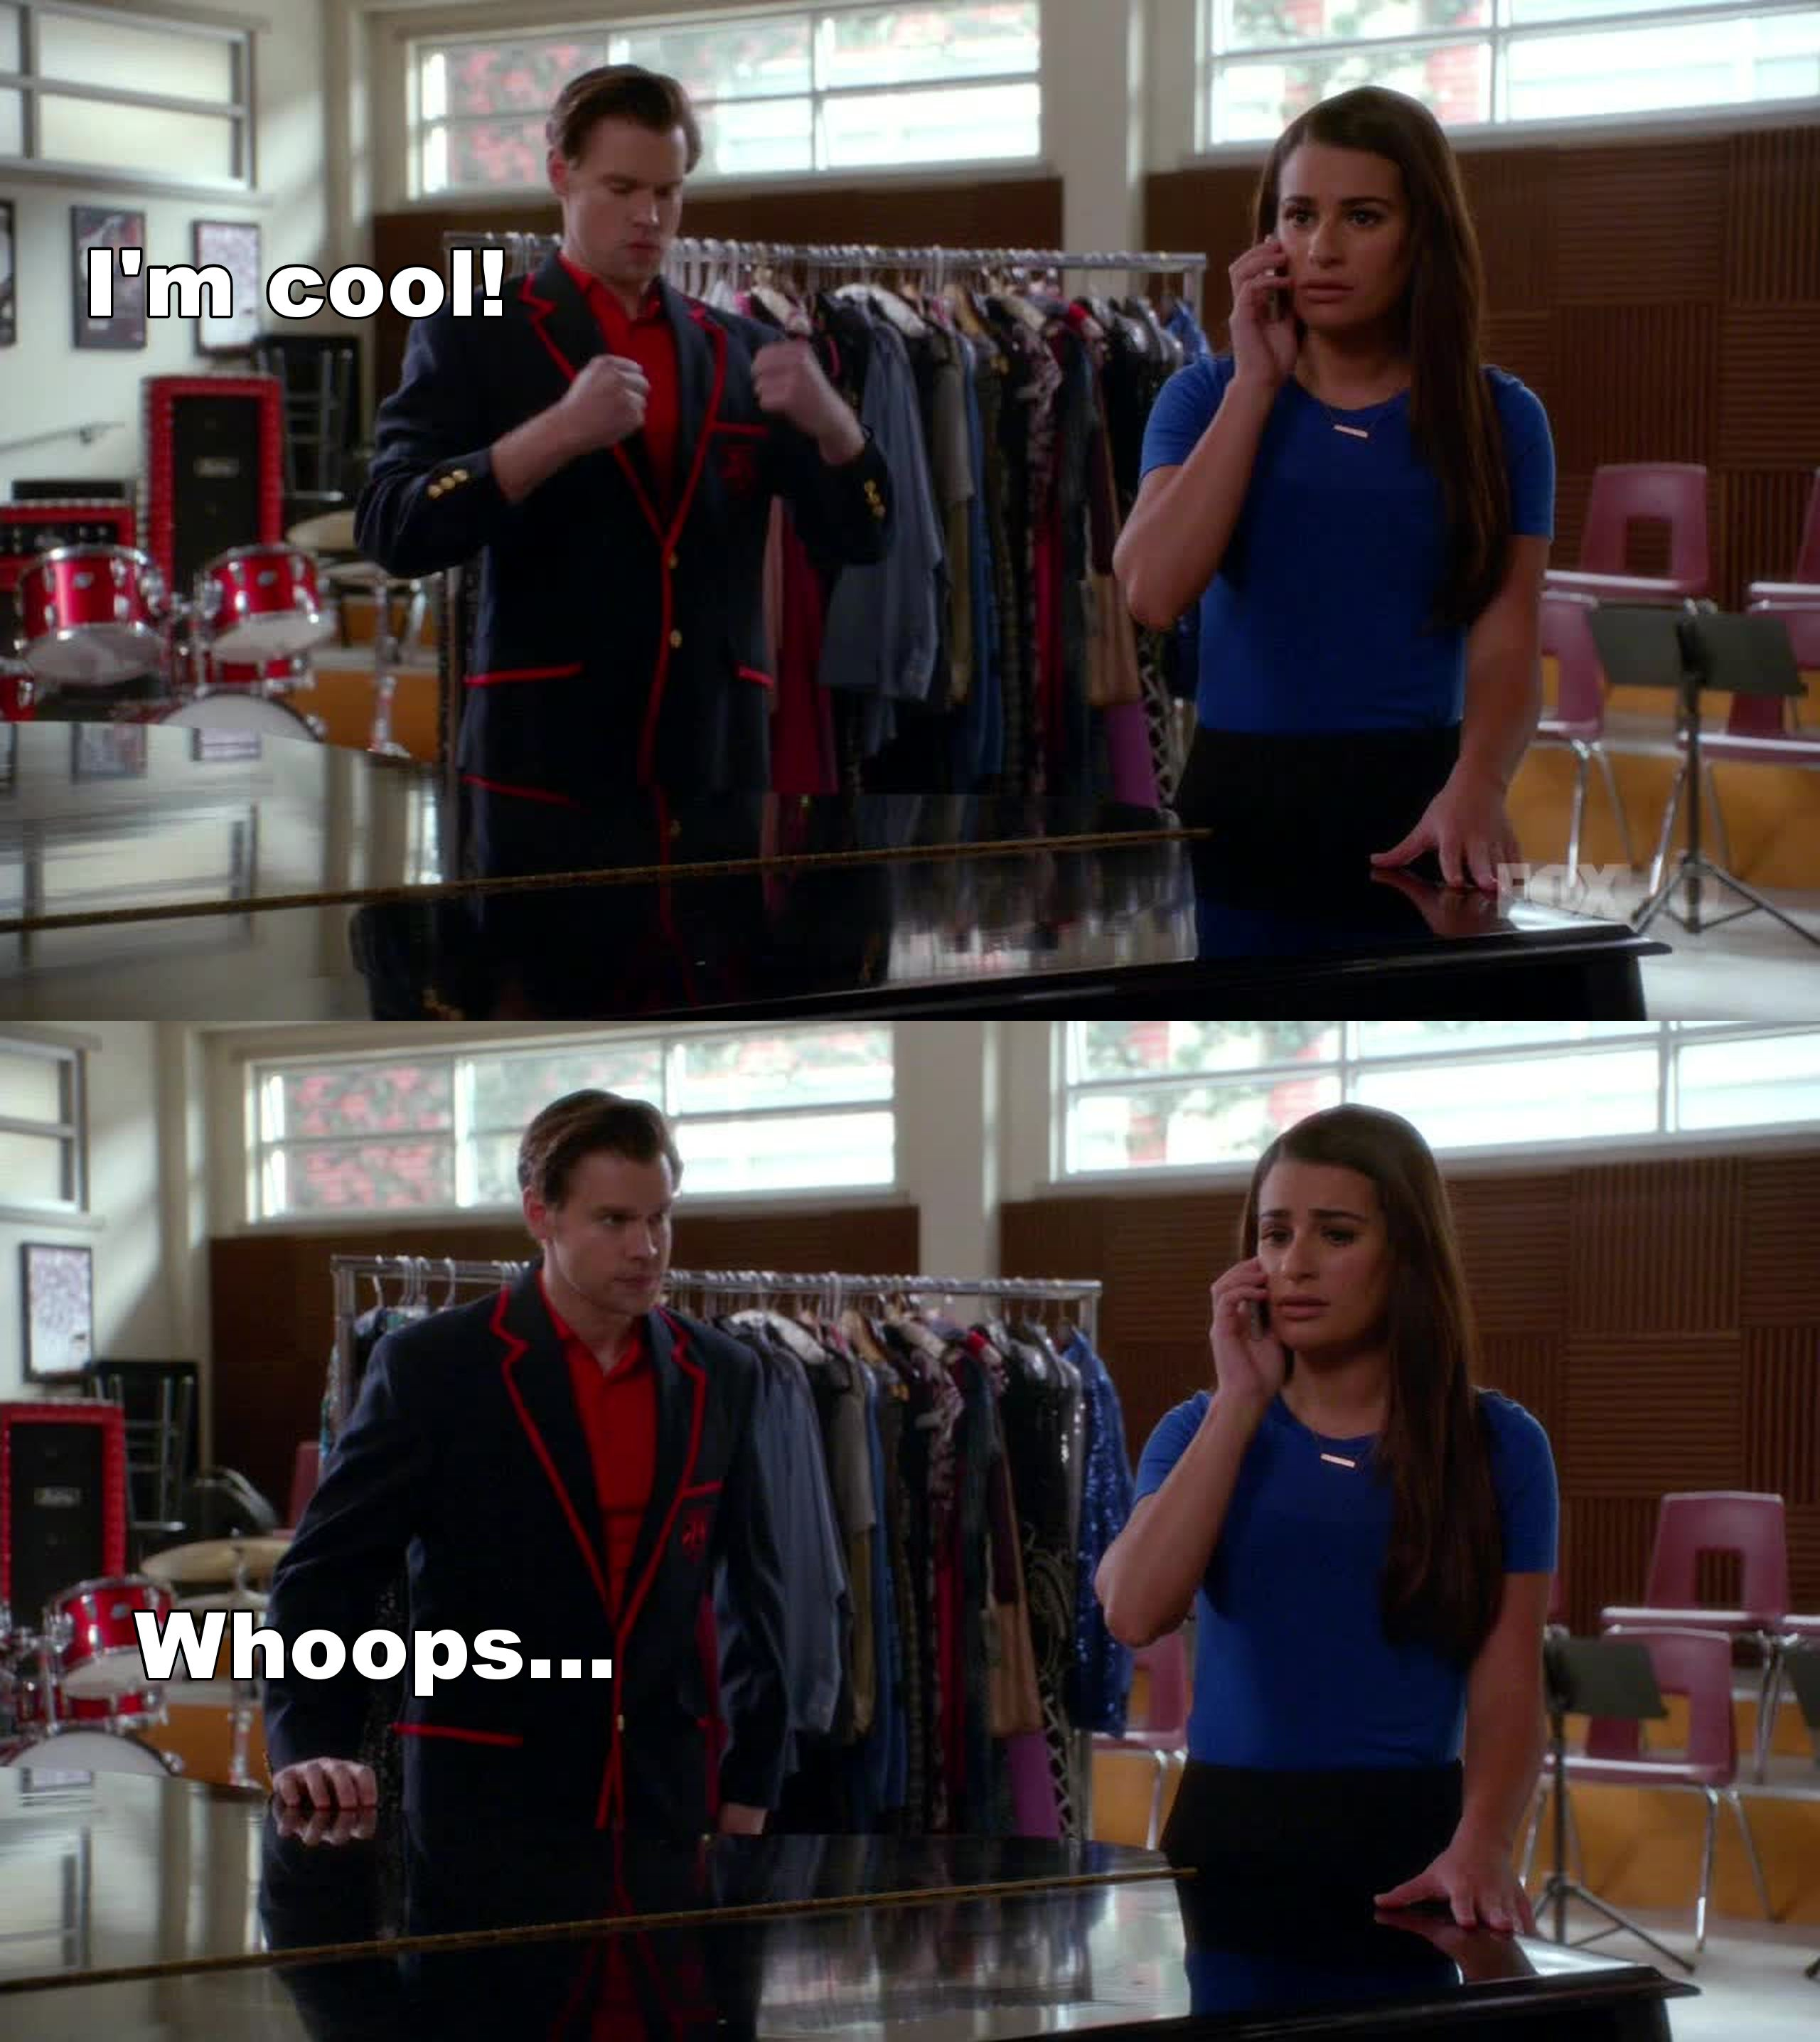 Sam trying moves during Rachel's call made me smile!